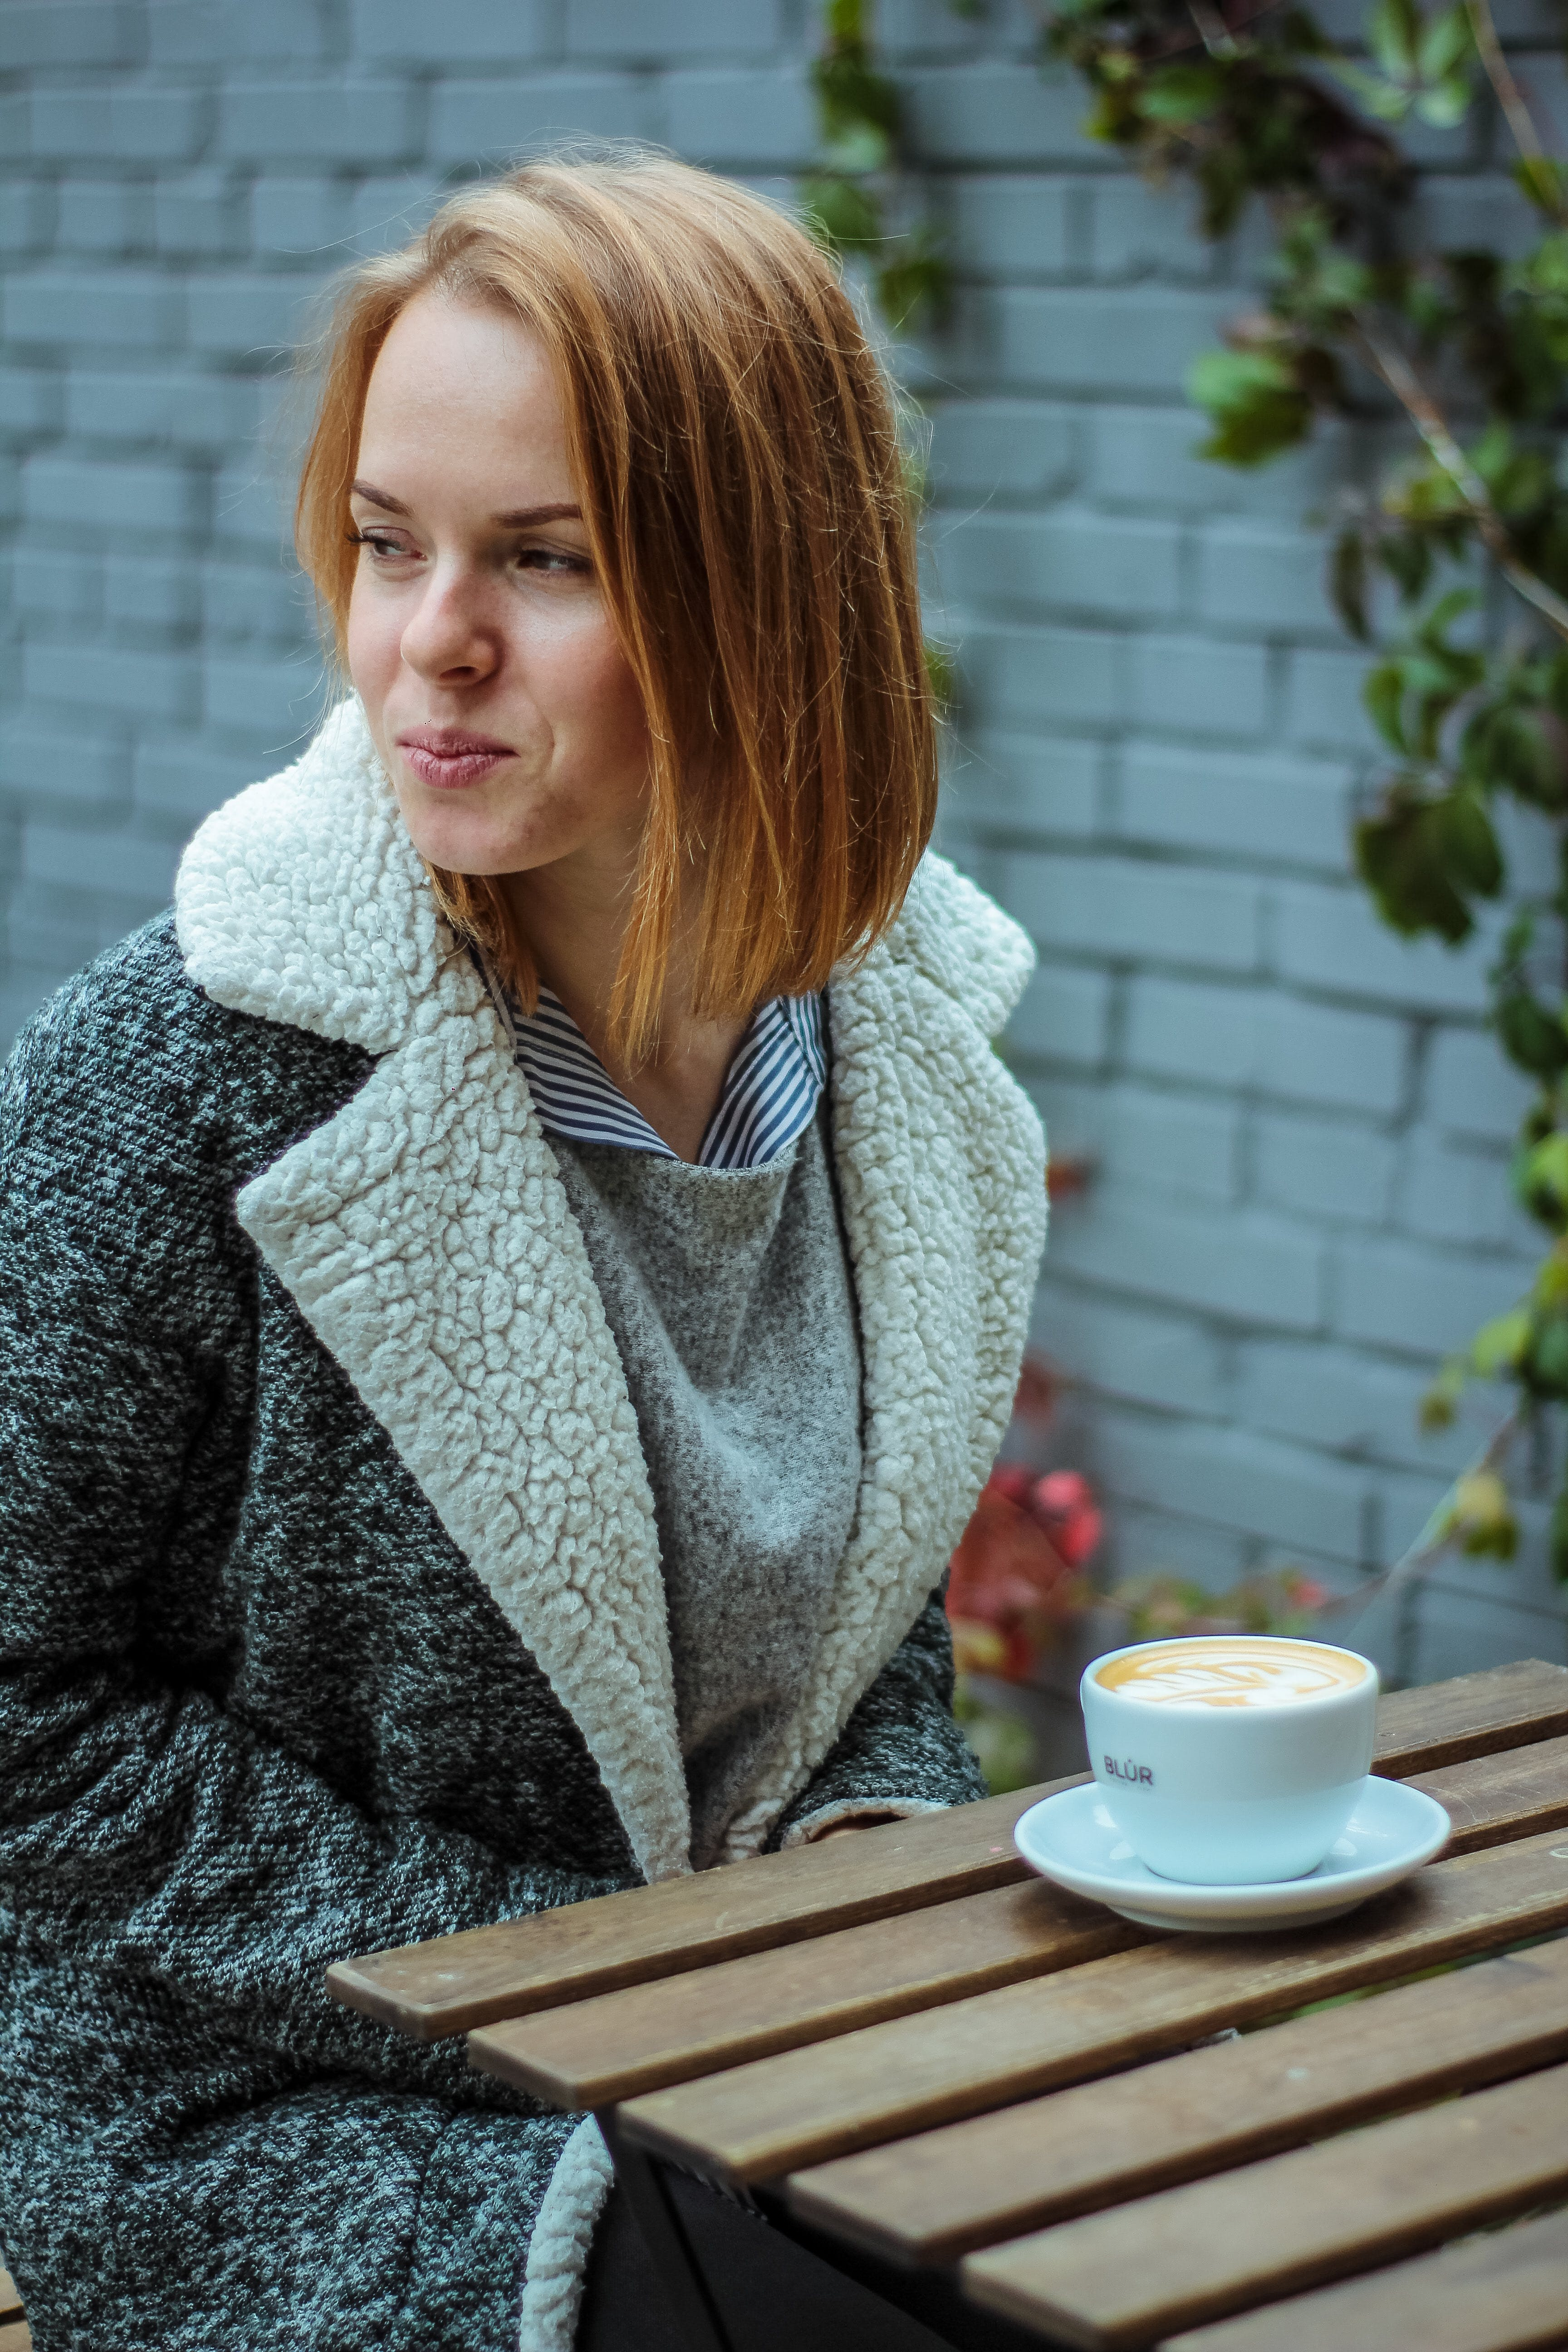 Woman Wearing Gray Coat in Front of Brown Table With White Coffee Cup